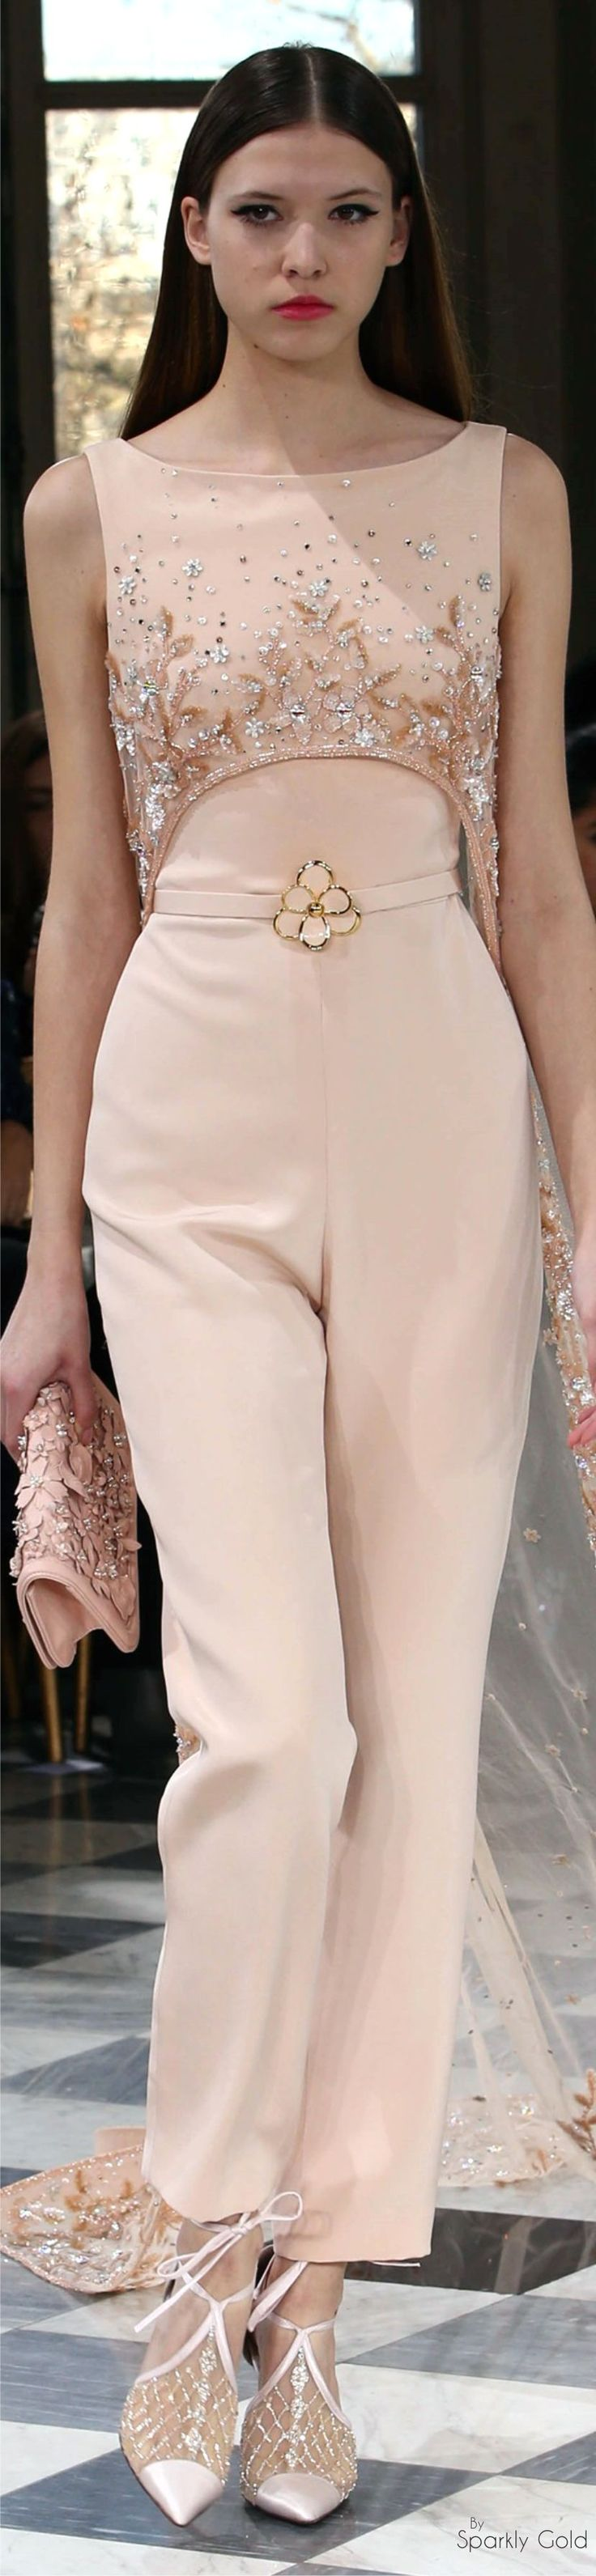 Georges Hobeika Spring 2016 Couture                                                                                                                                                     More